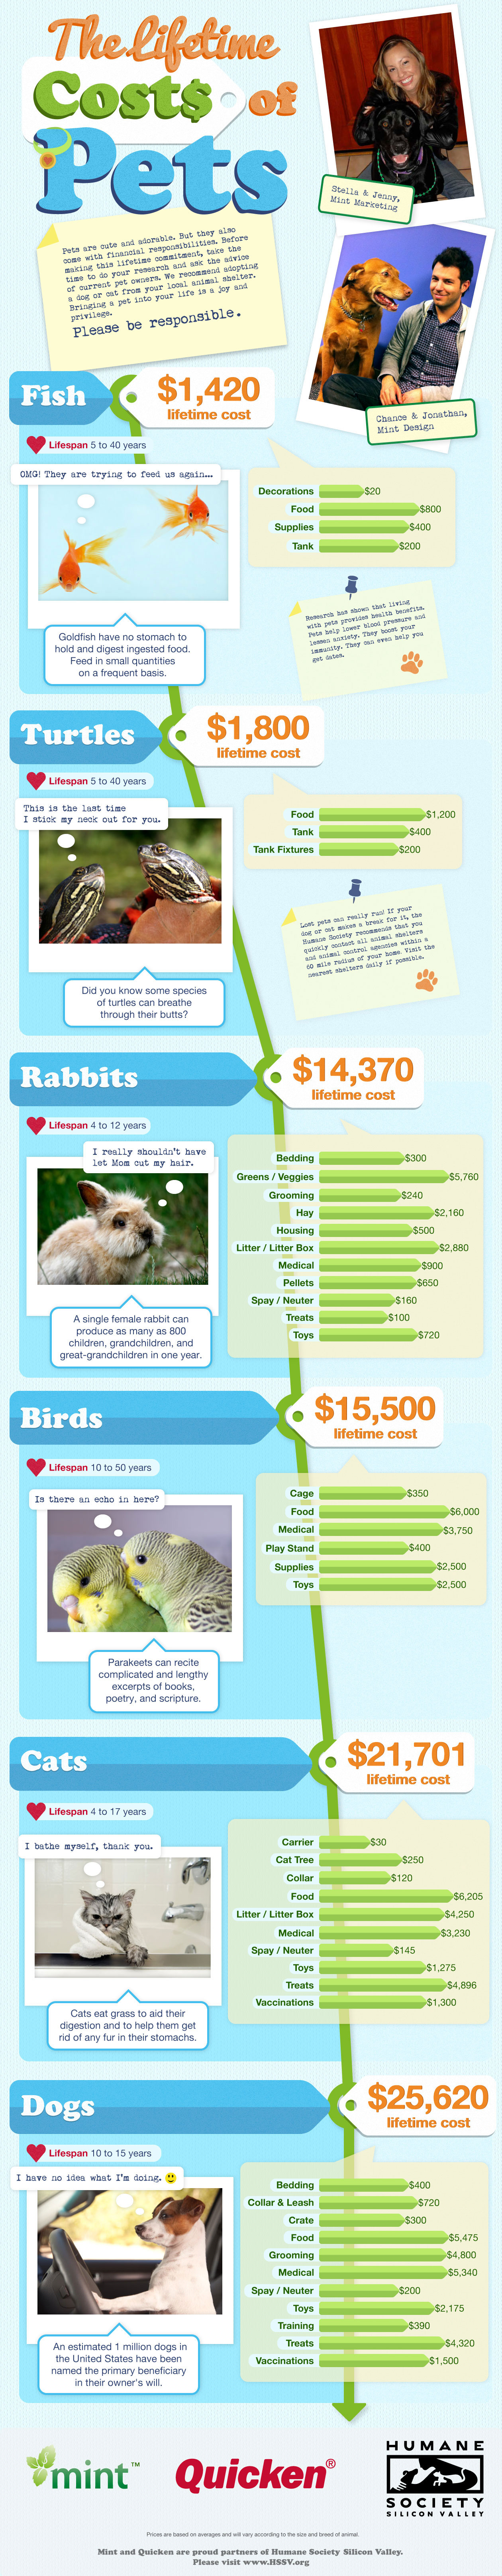 The Lifetime Costs of Pets